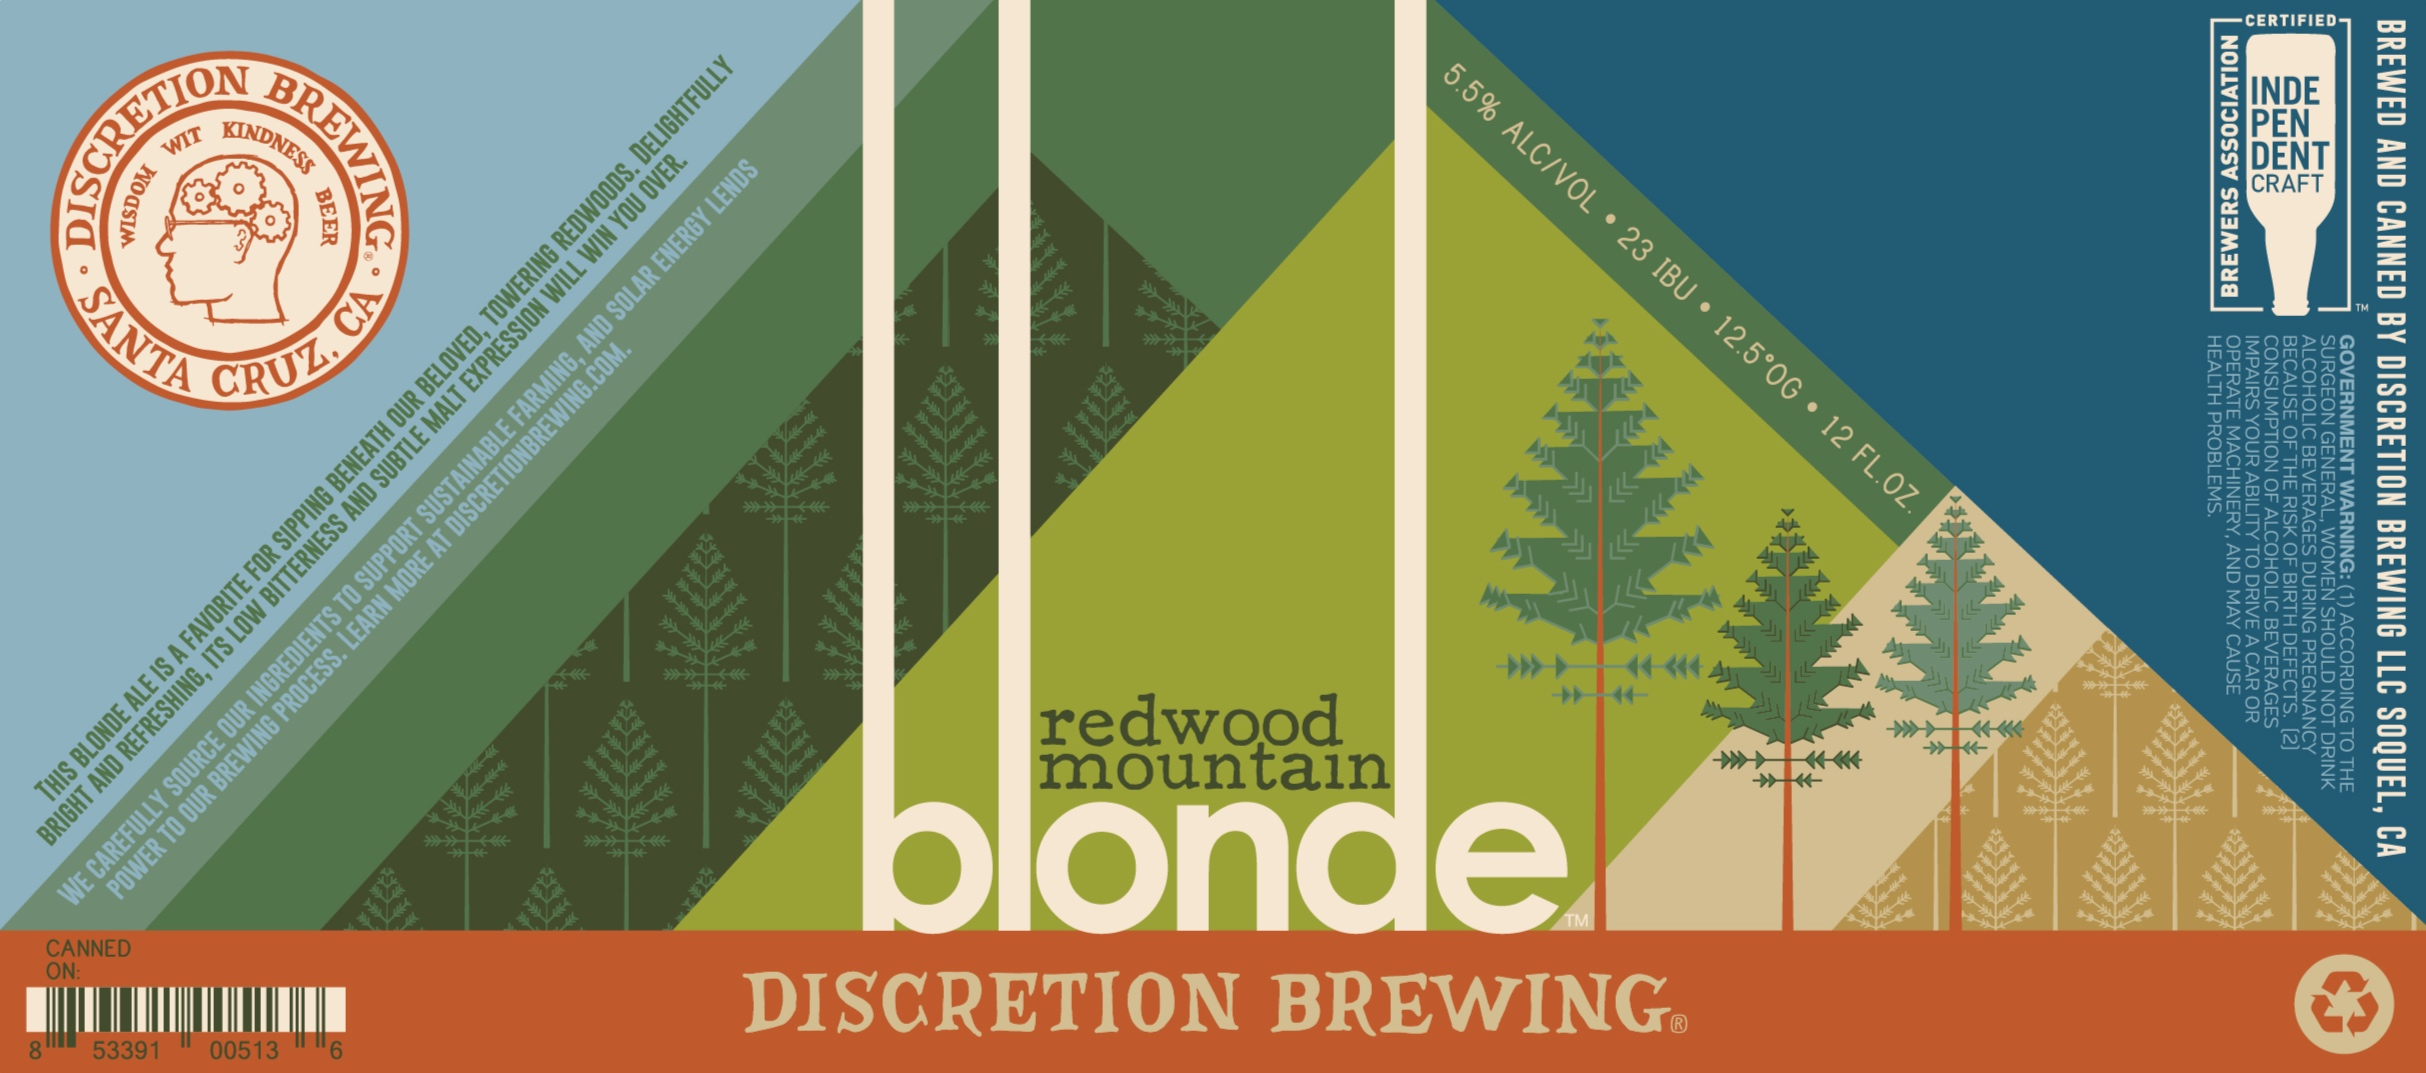 Redwood Mountain Blonde